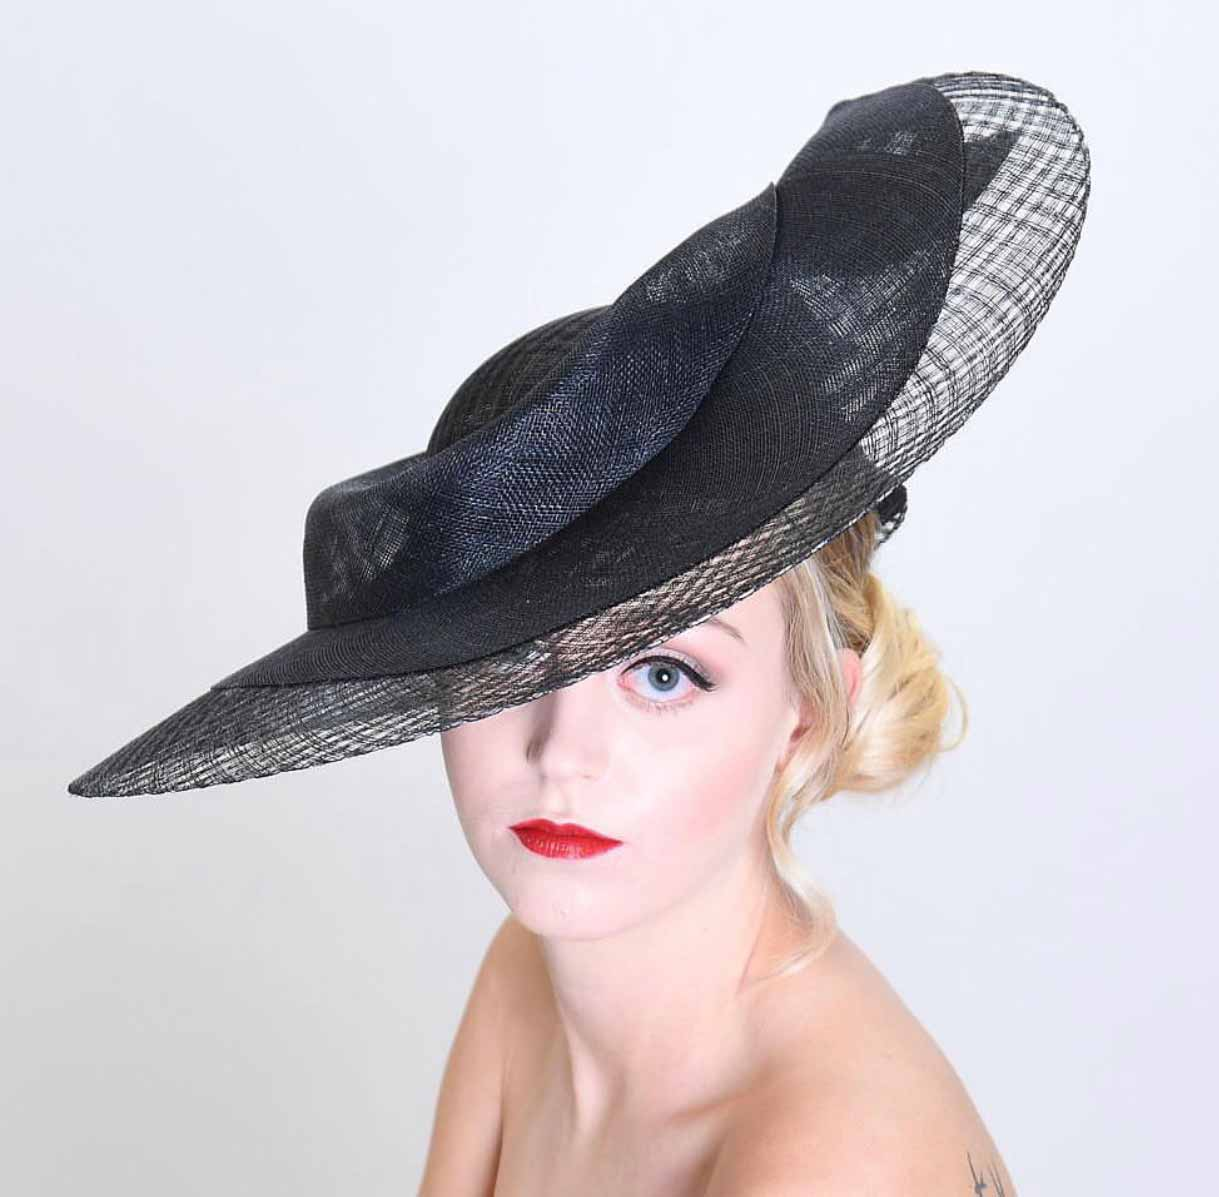 Freeform parasisal straw hat in black with crinolin trim